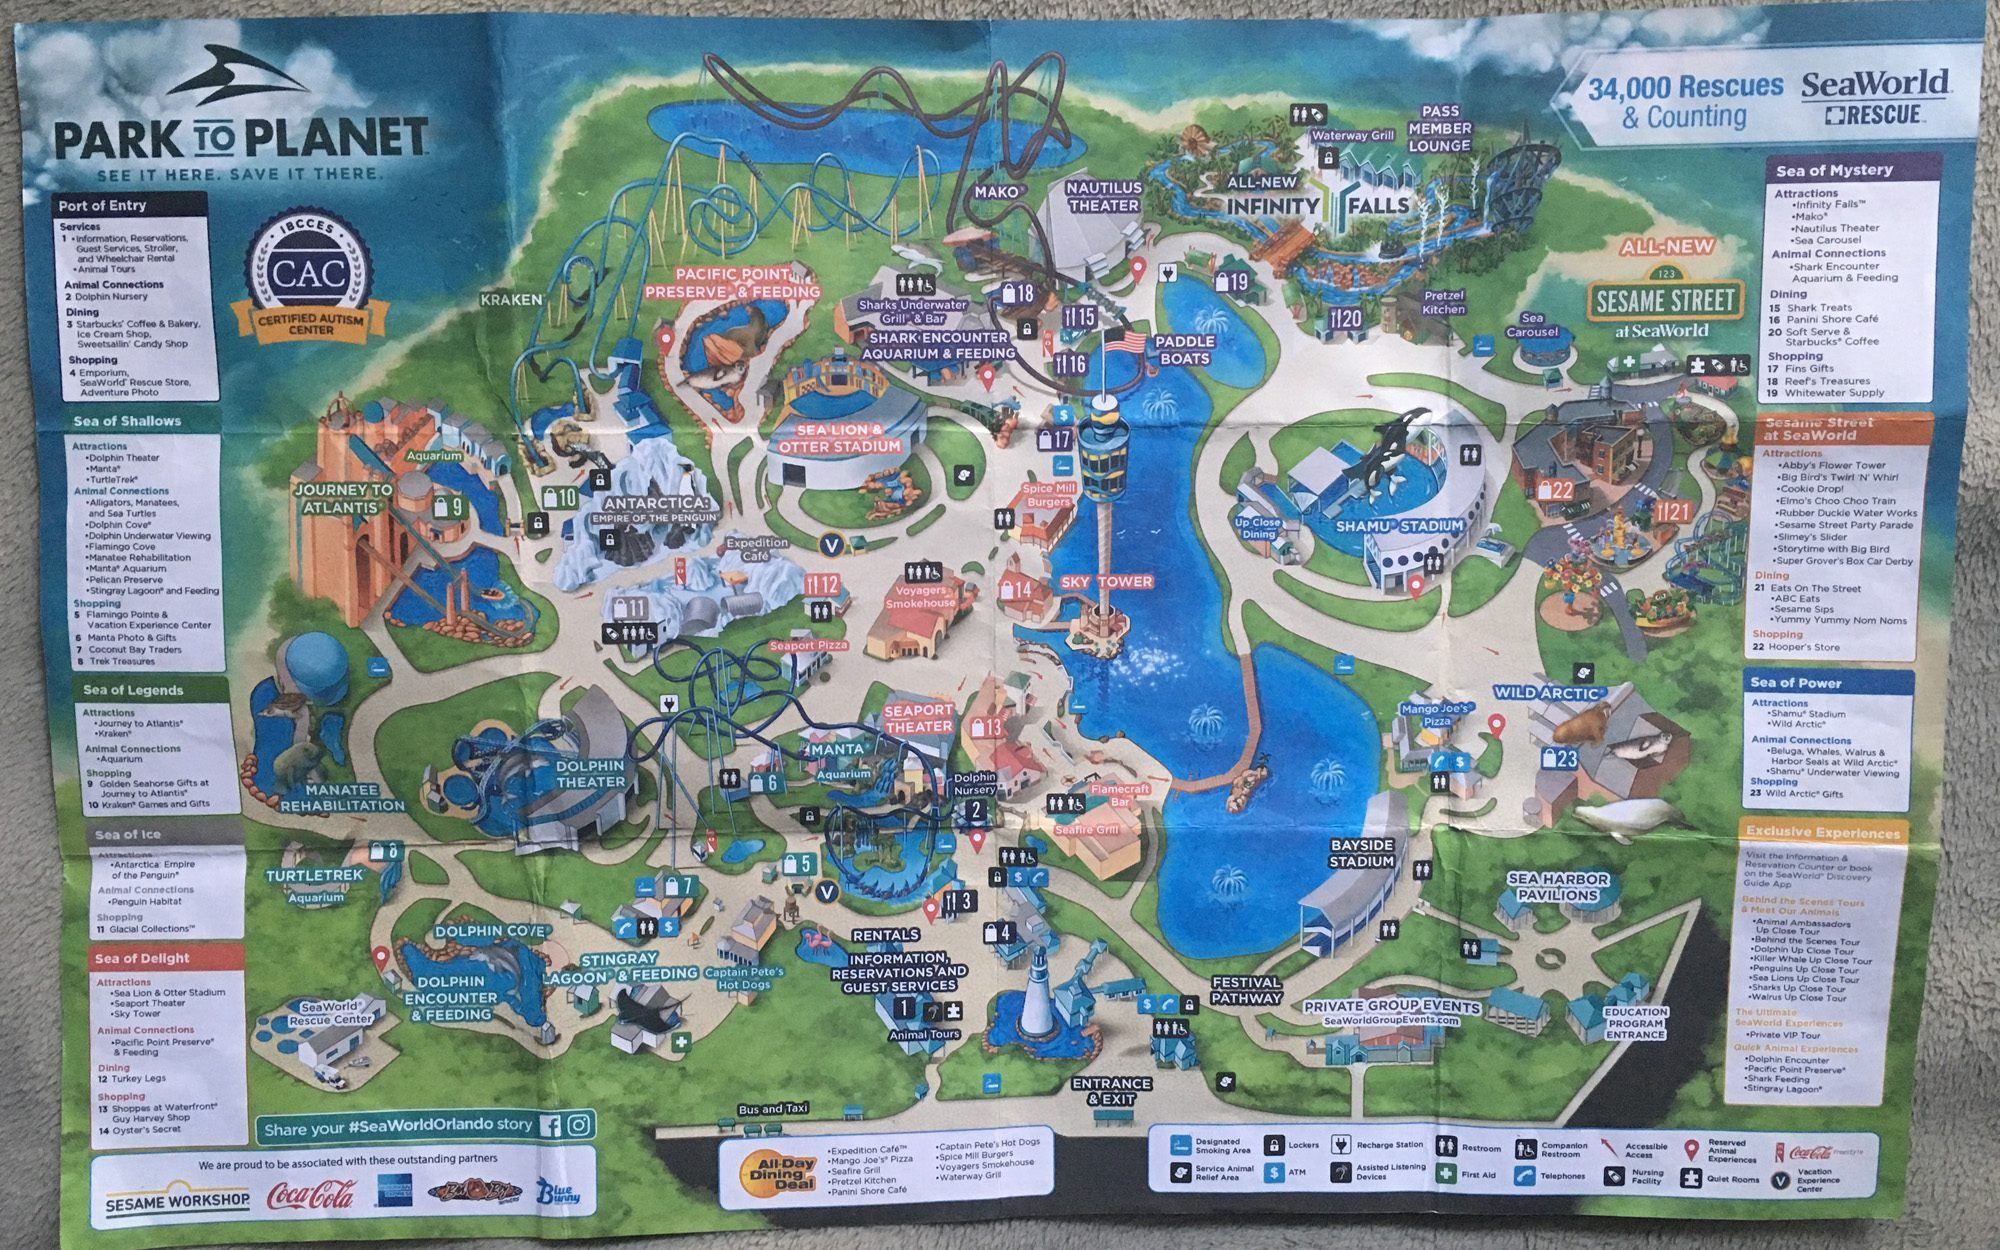 2019 SeaWorld Orlando map image